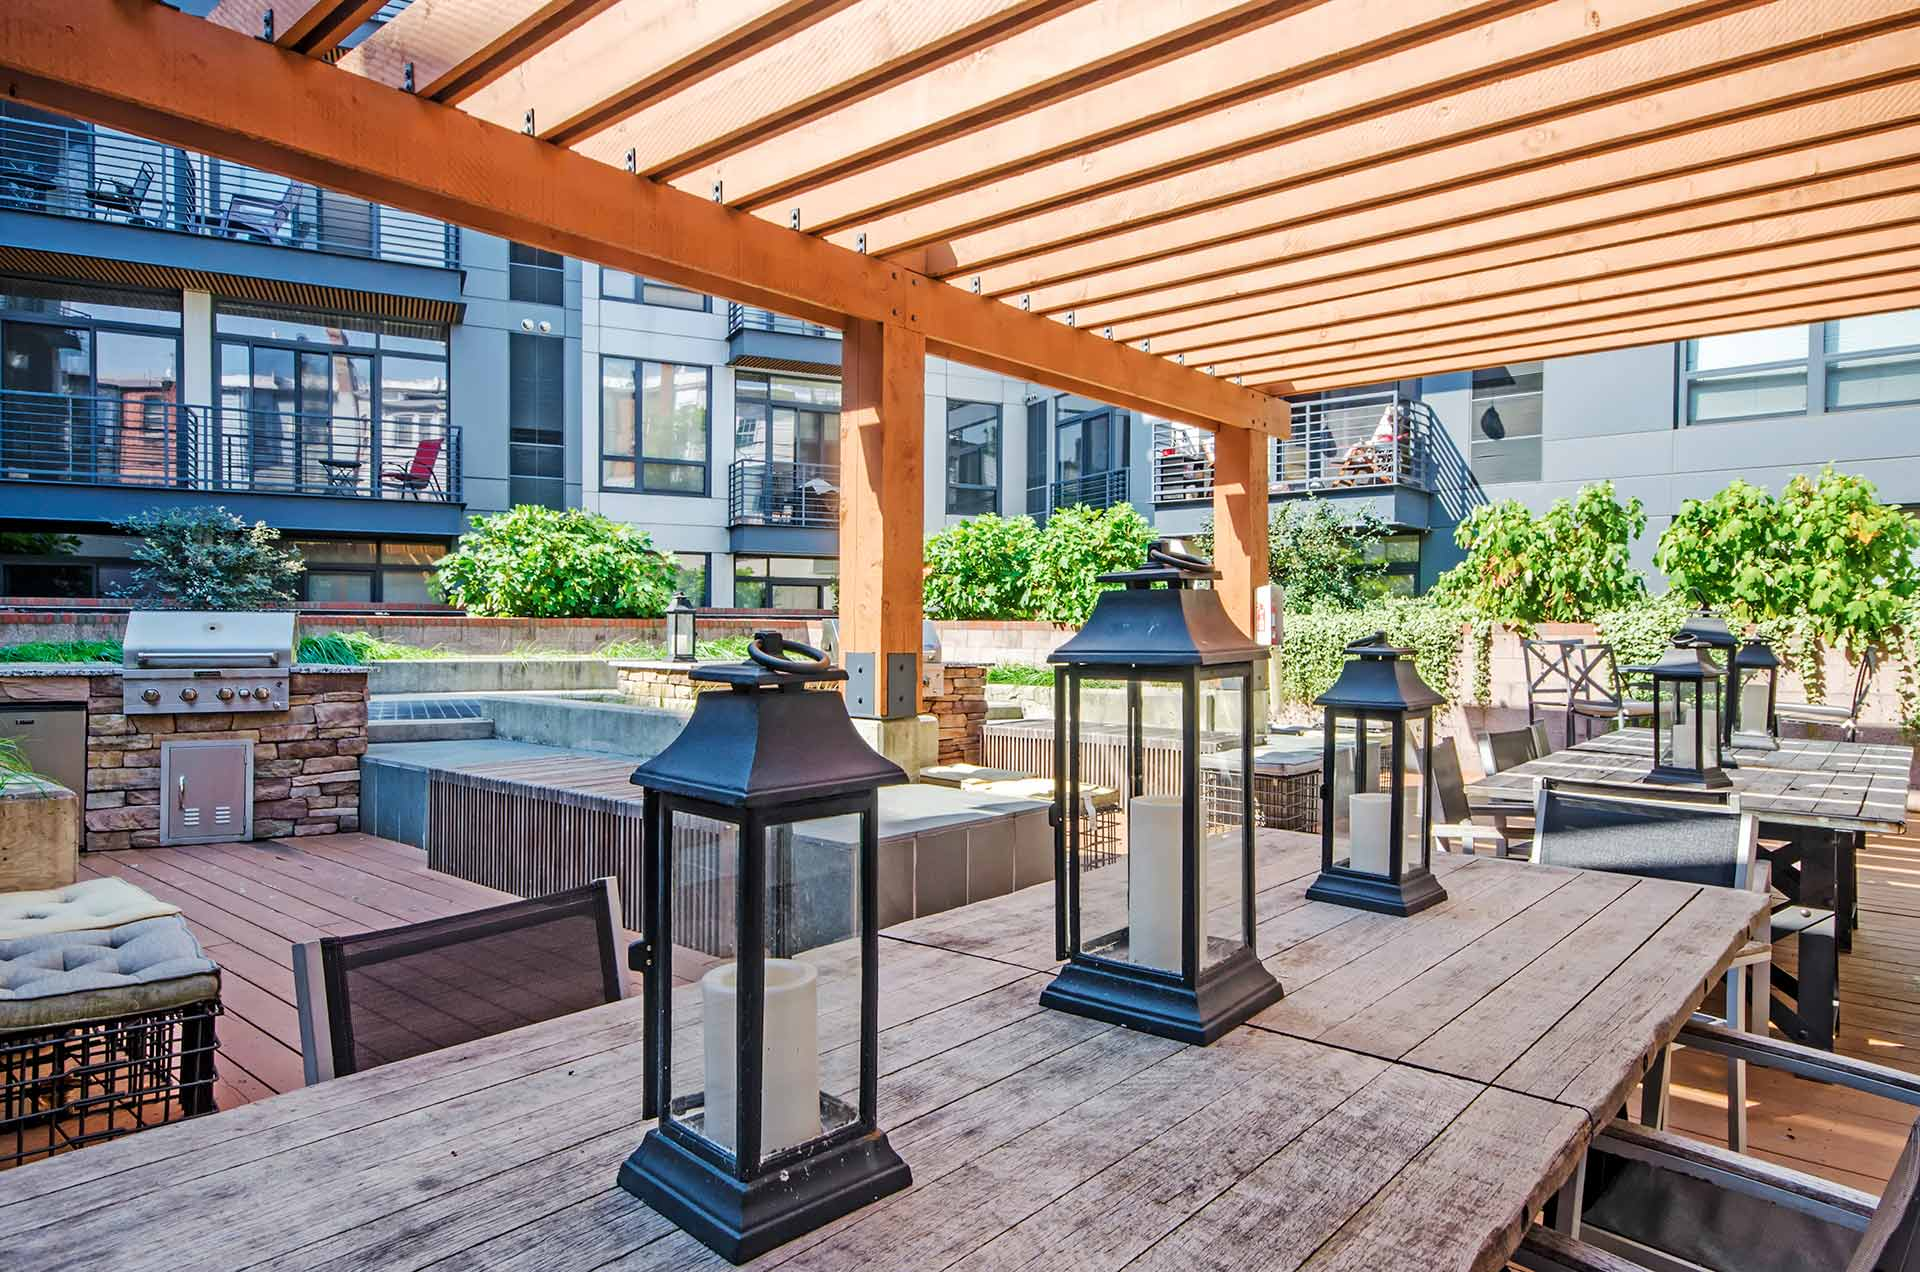 Interior courtyard closeup of communal tables with large lanterns, shaded trellis and grilling stations beyond